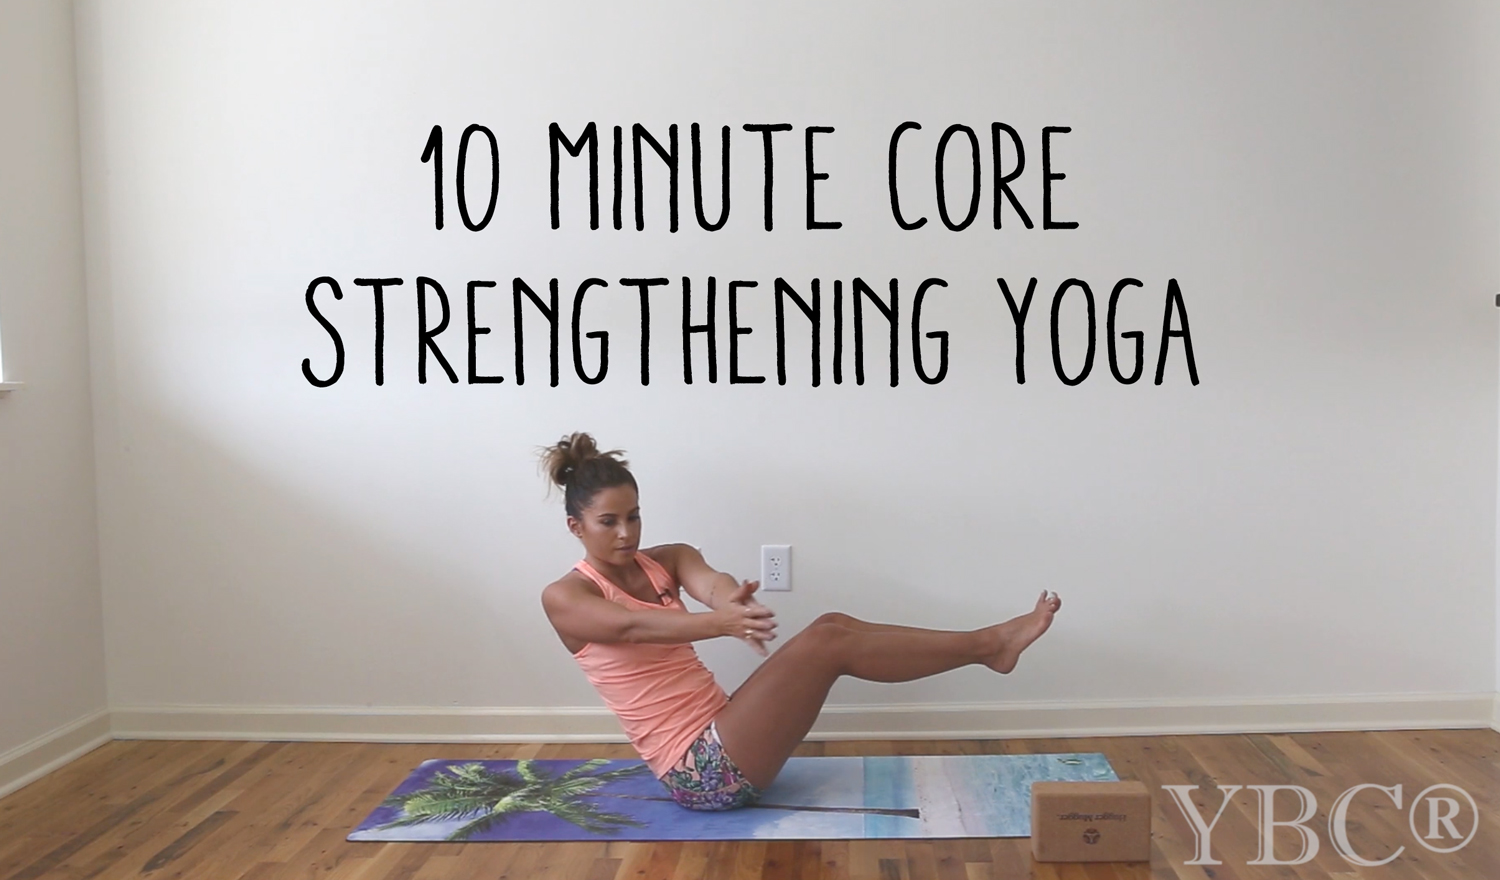 Pin now, practice later - 10 minute core strengthening yoga video  Wearing:  Sweaty Betty top  and  high waist shorts .